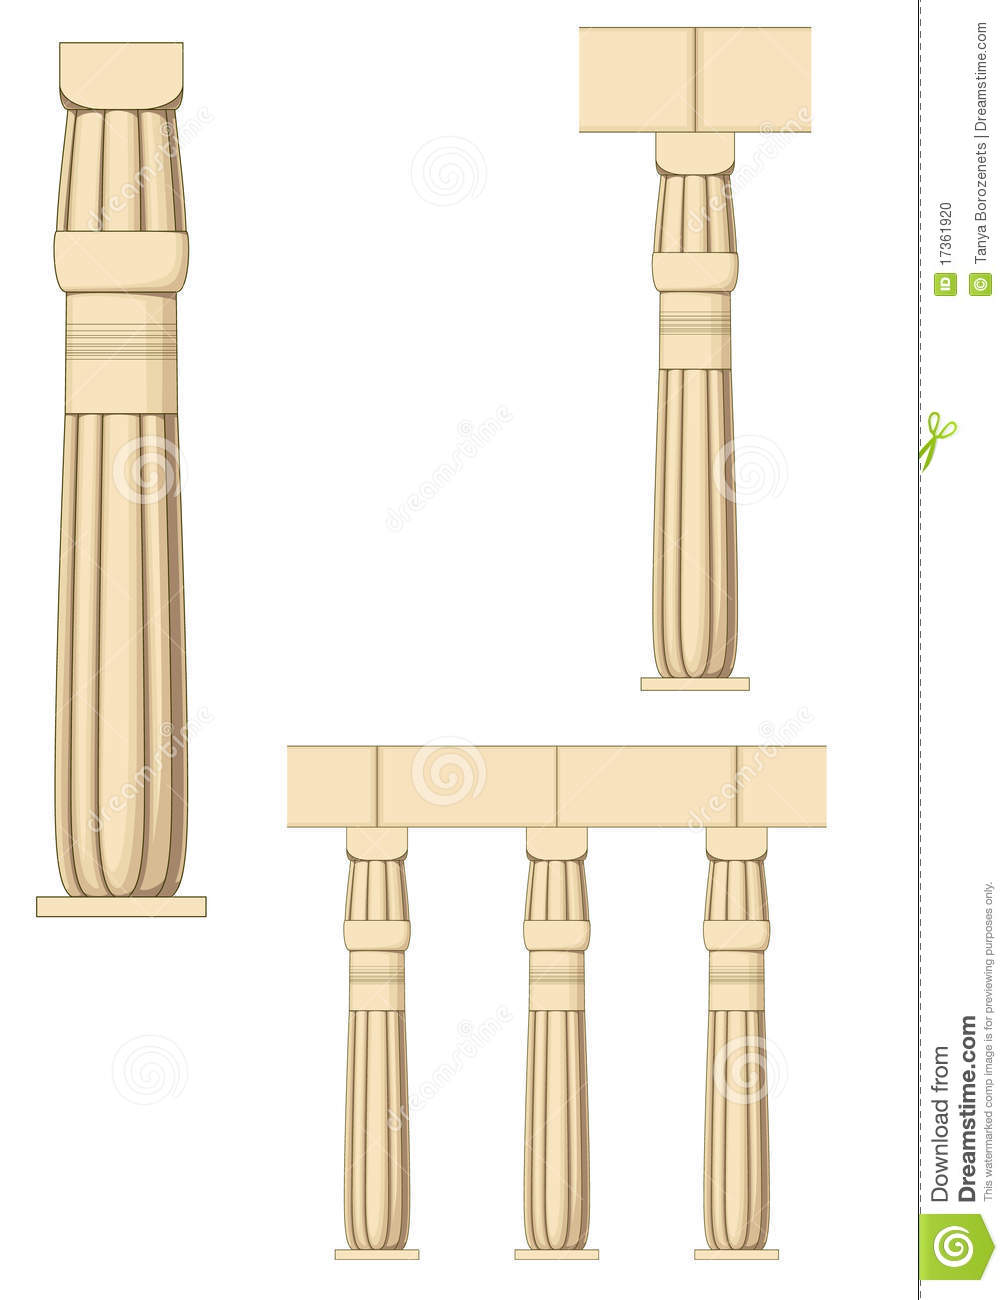 Ancient Egyptian Architecture Columns Ancient Egypt Column Stock Photo